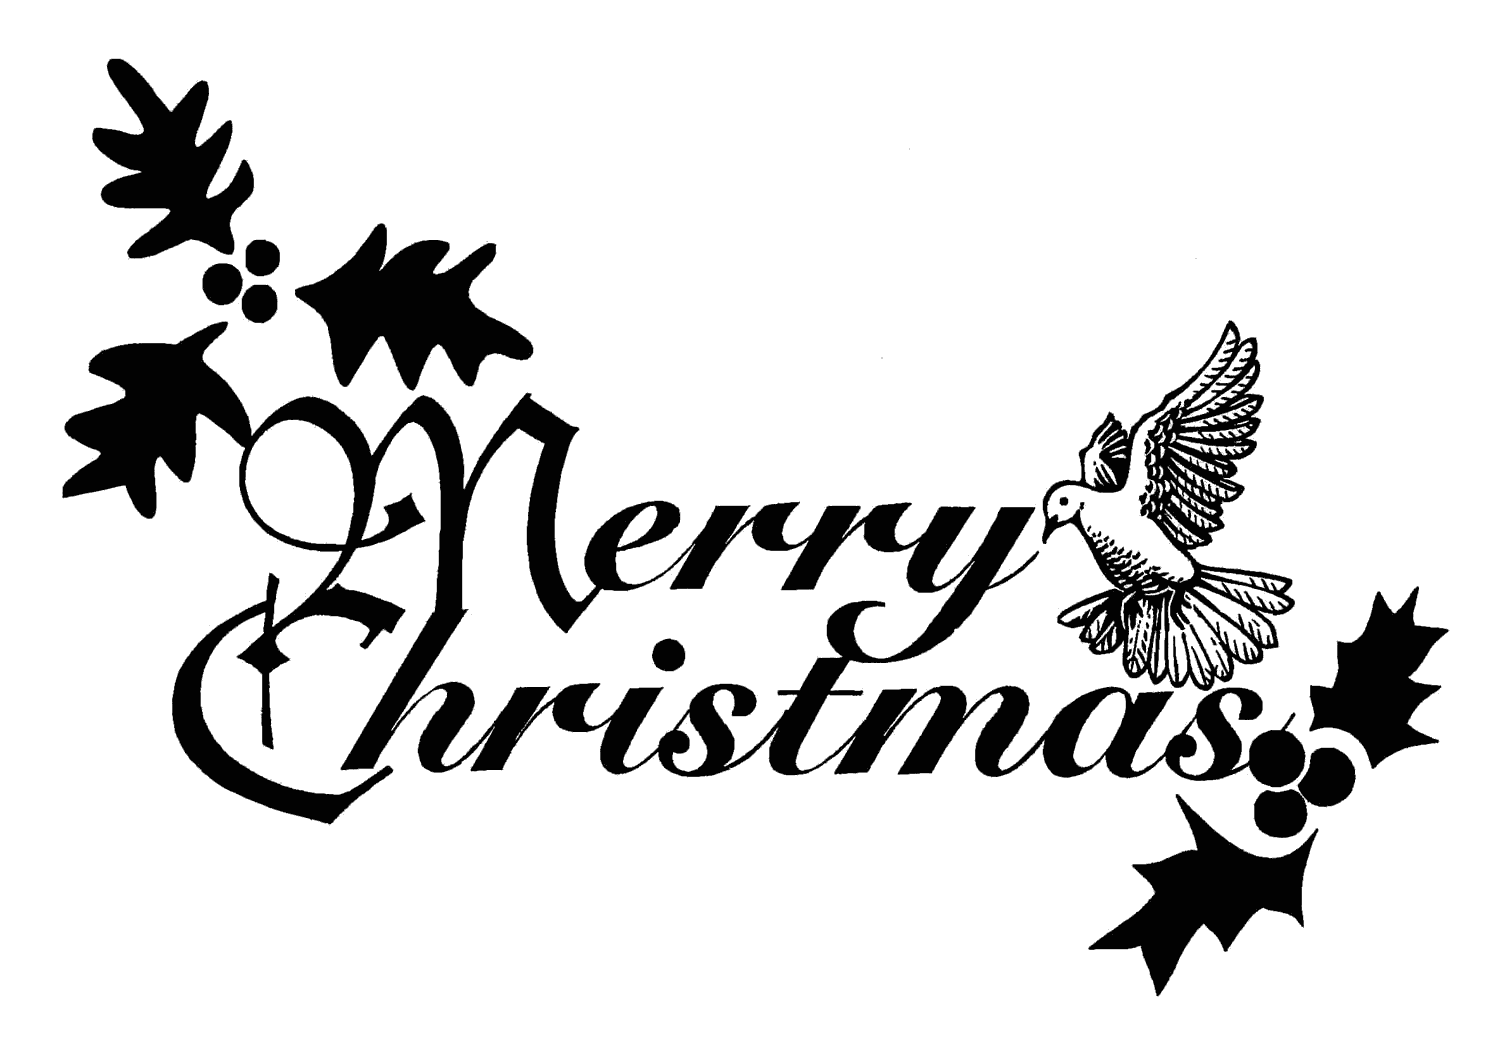 Transparent clipart of a decoration sign saying Merry Christmas. , Click here to get more Free Clipart at ClipartPal.com